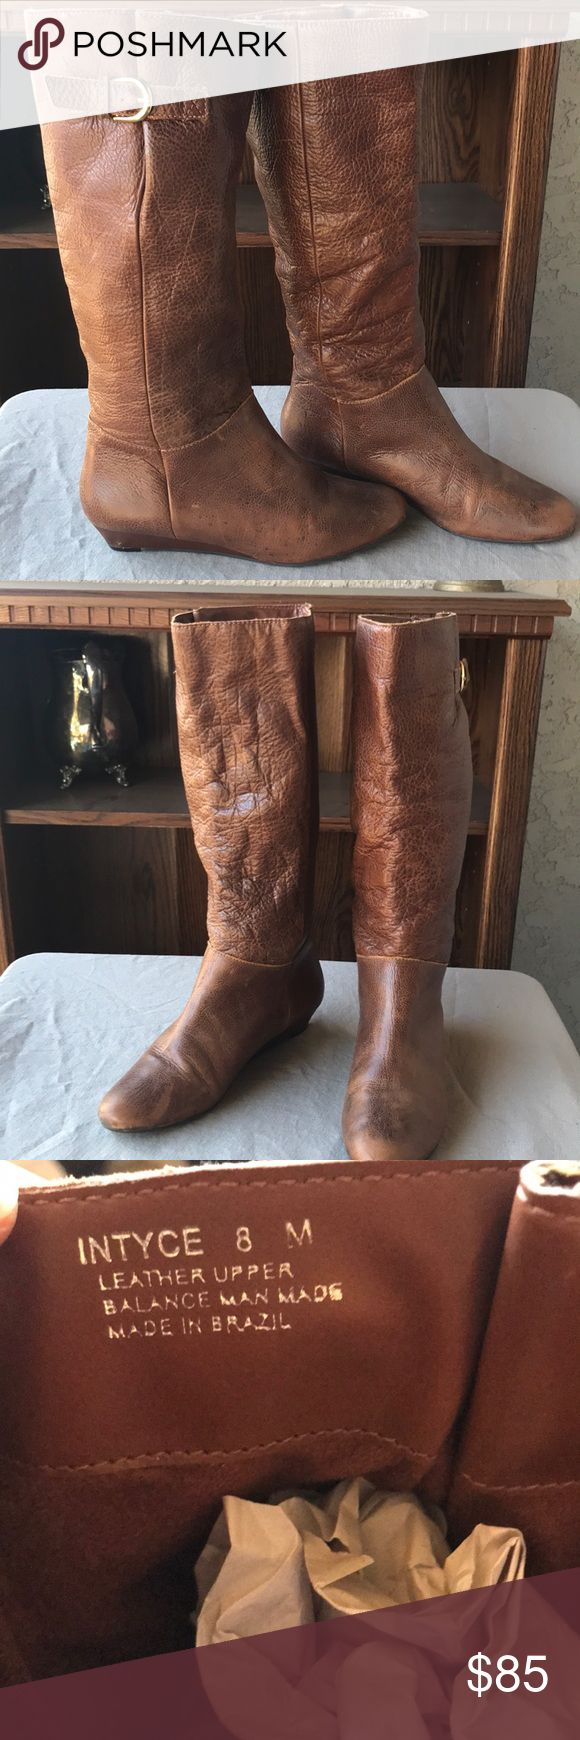 Steve Madden Intyce Boot Brand new without tags boots in beautiful cognac colored 100% leather. Condition at shown in pictures. Gorgeous shoe with gold buckle on side and pairs well with all colors and outfits! Steve Madden Shoes Winter & Rain Boots